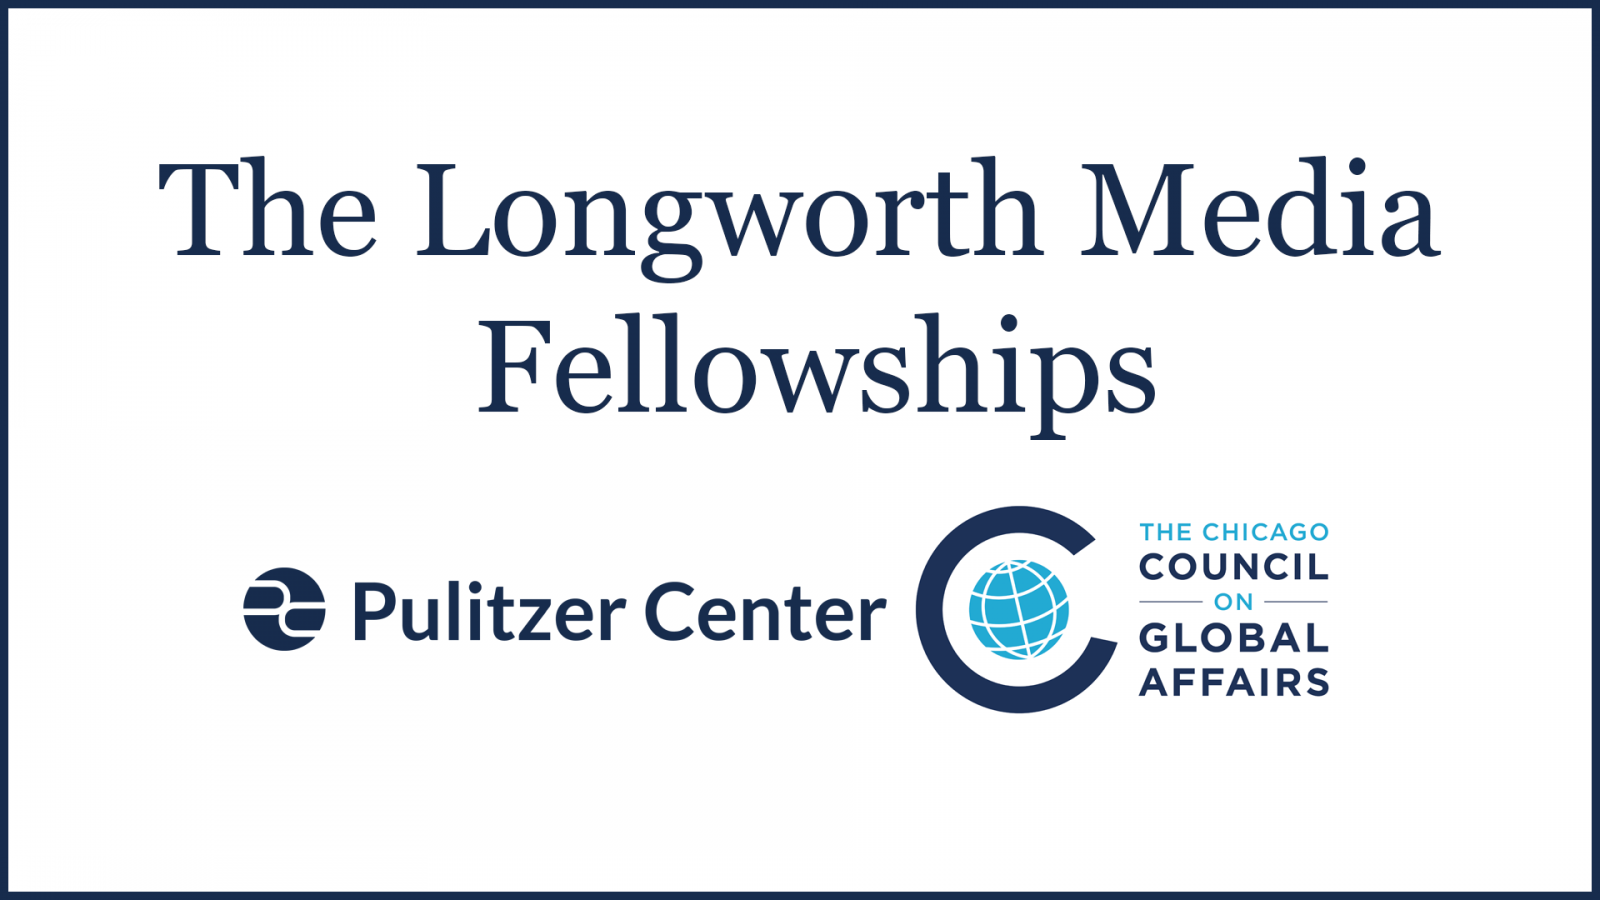 Photography image - Loading longworth_fellowships_announcement_logo.png